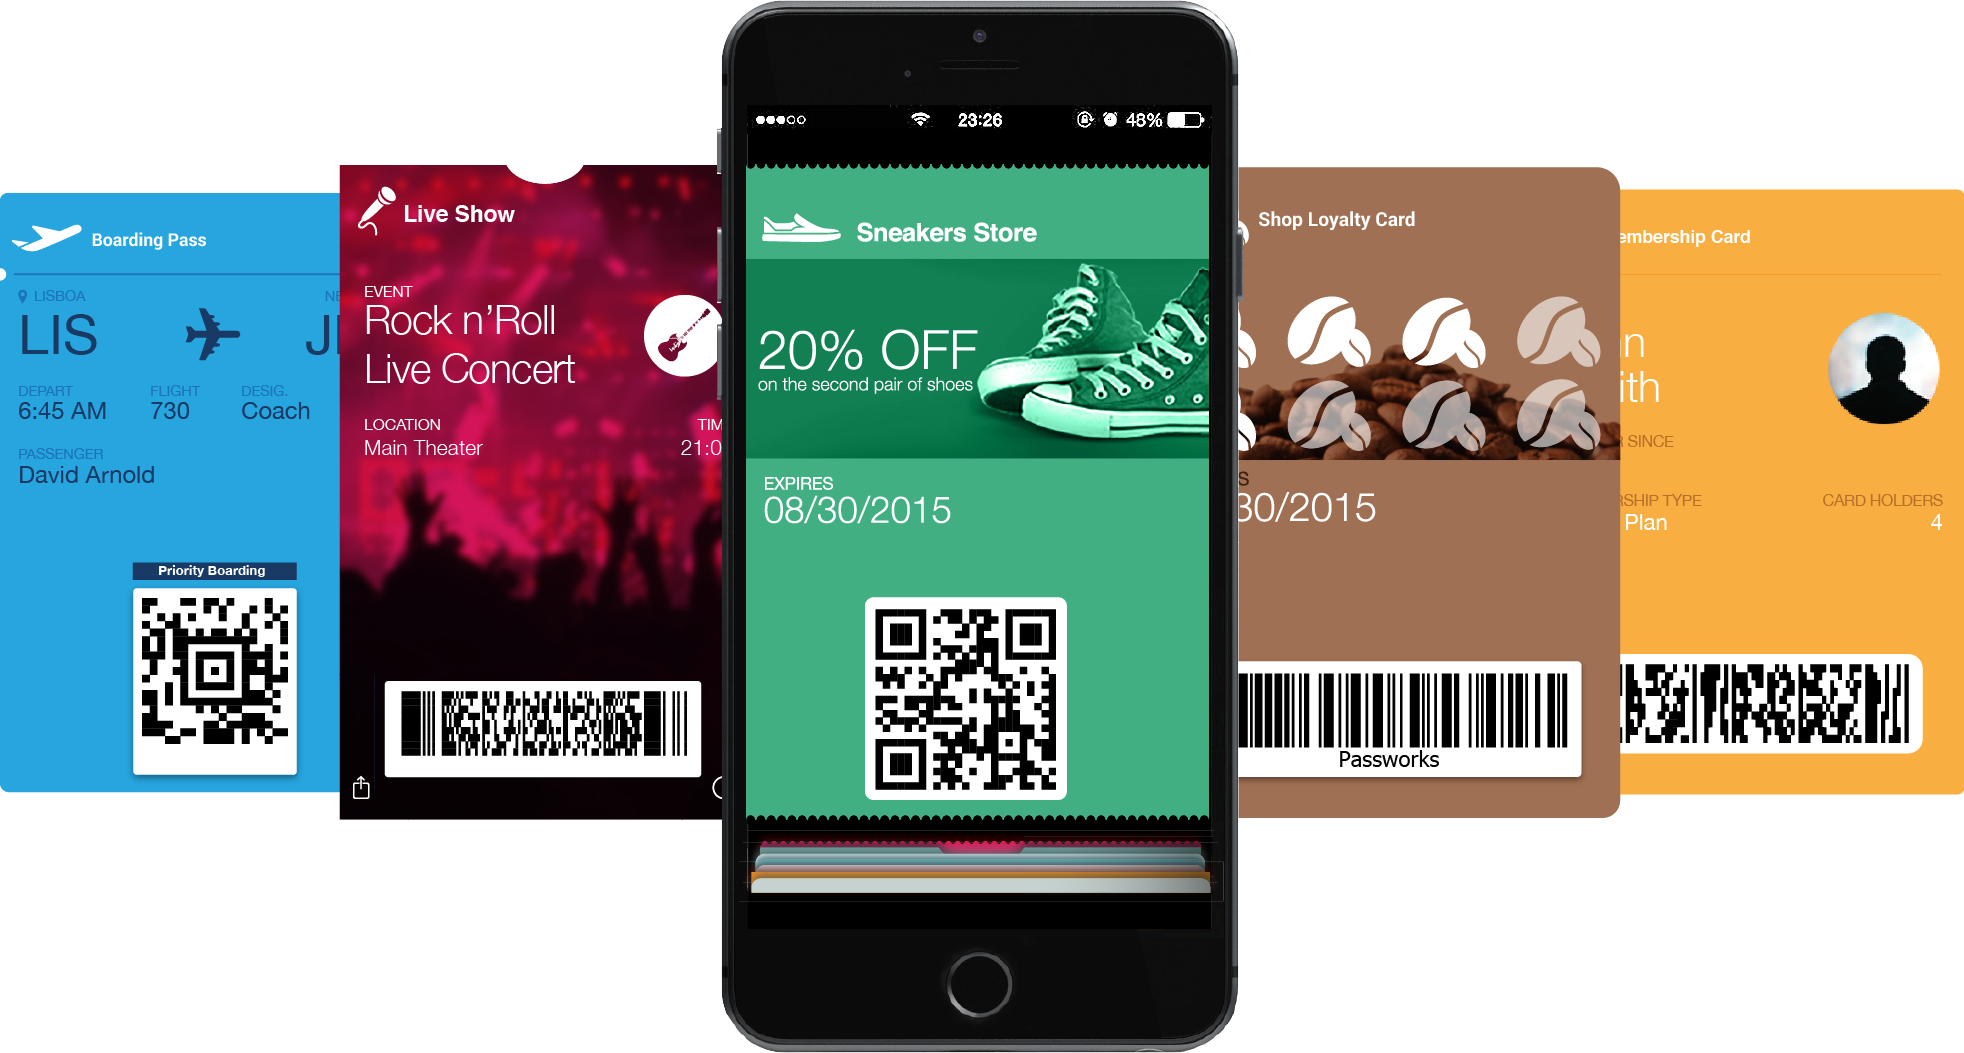 Apple wallet pass png. Passworks mobile marketing engagement